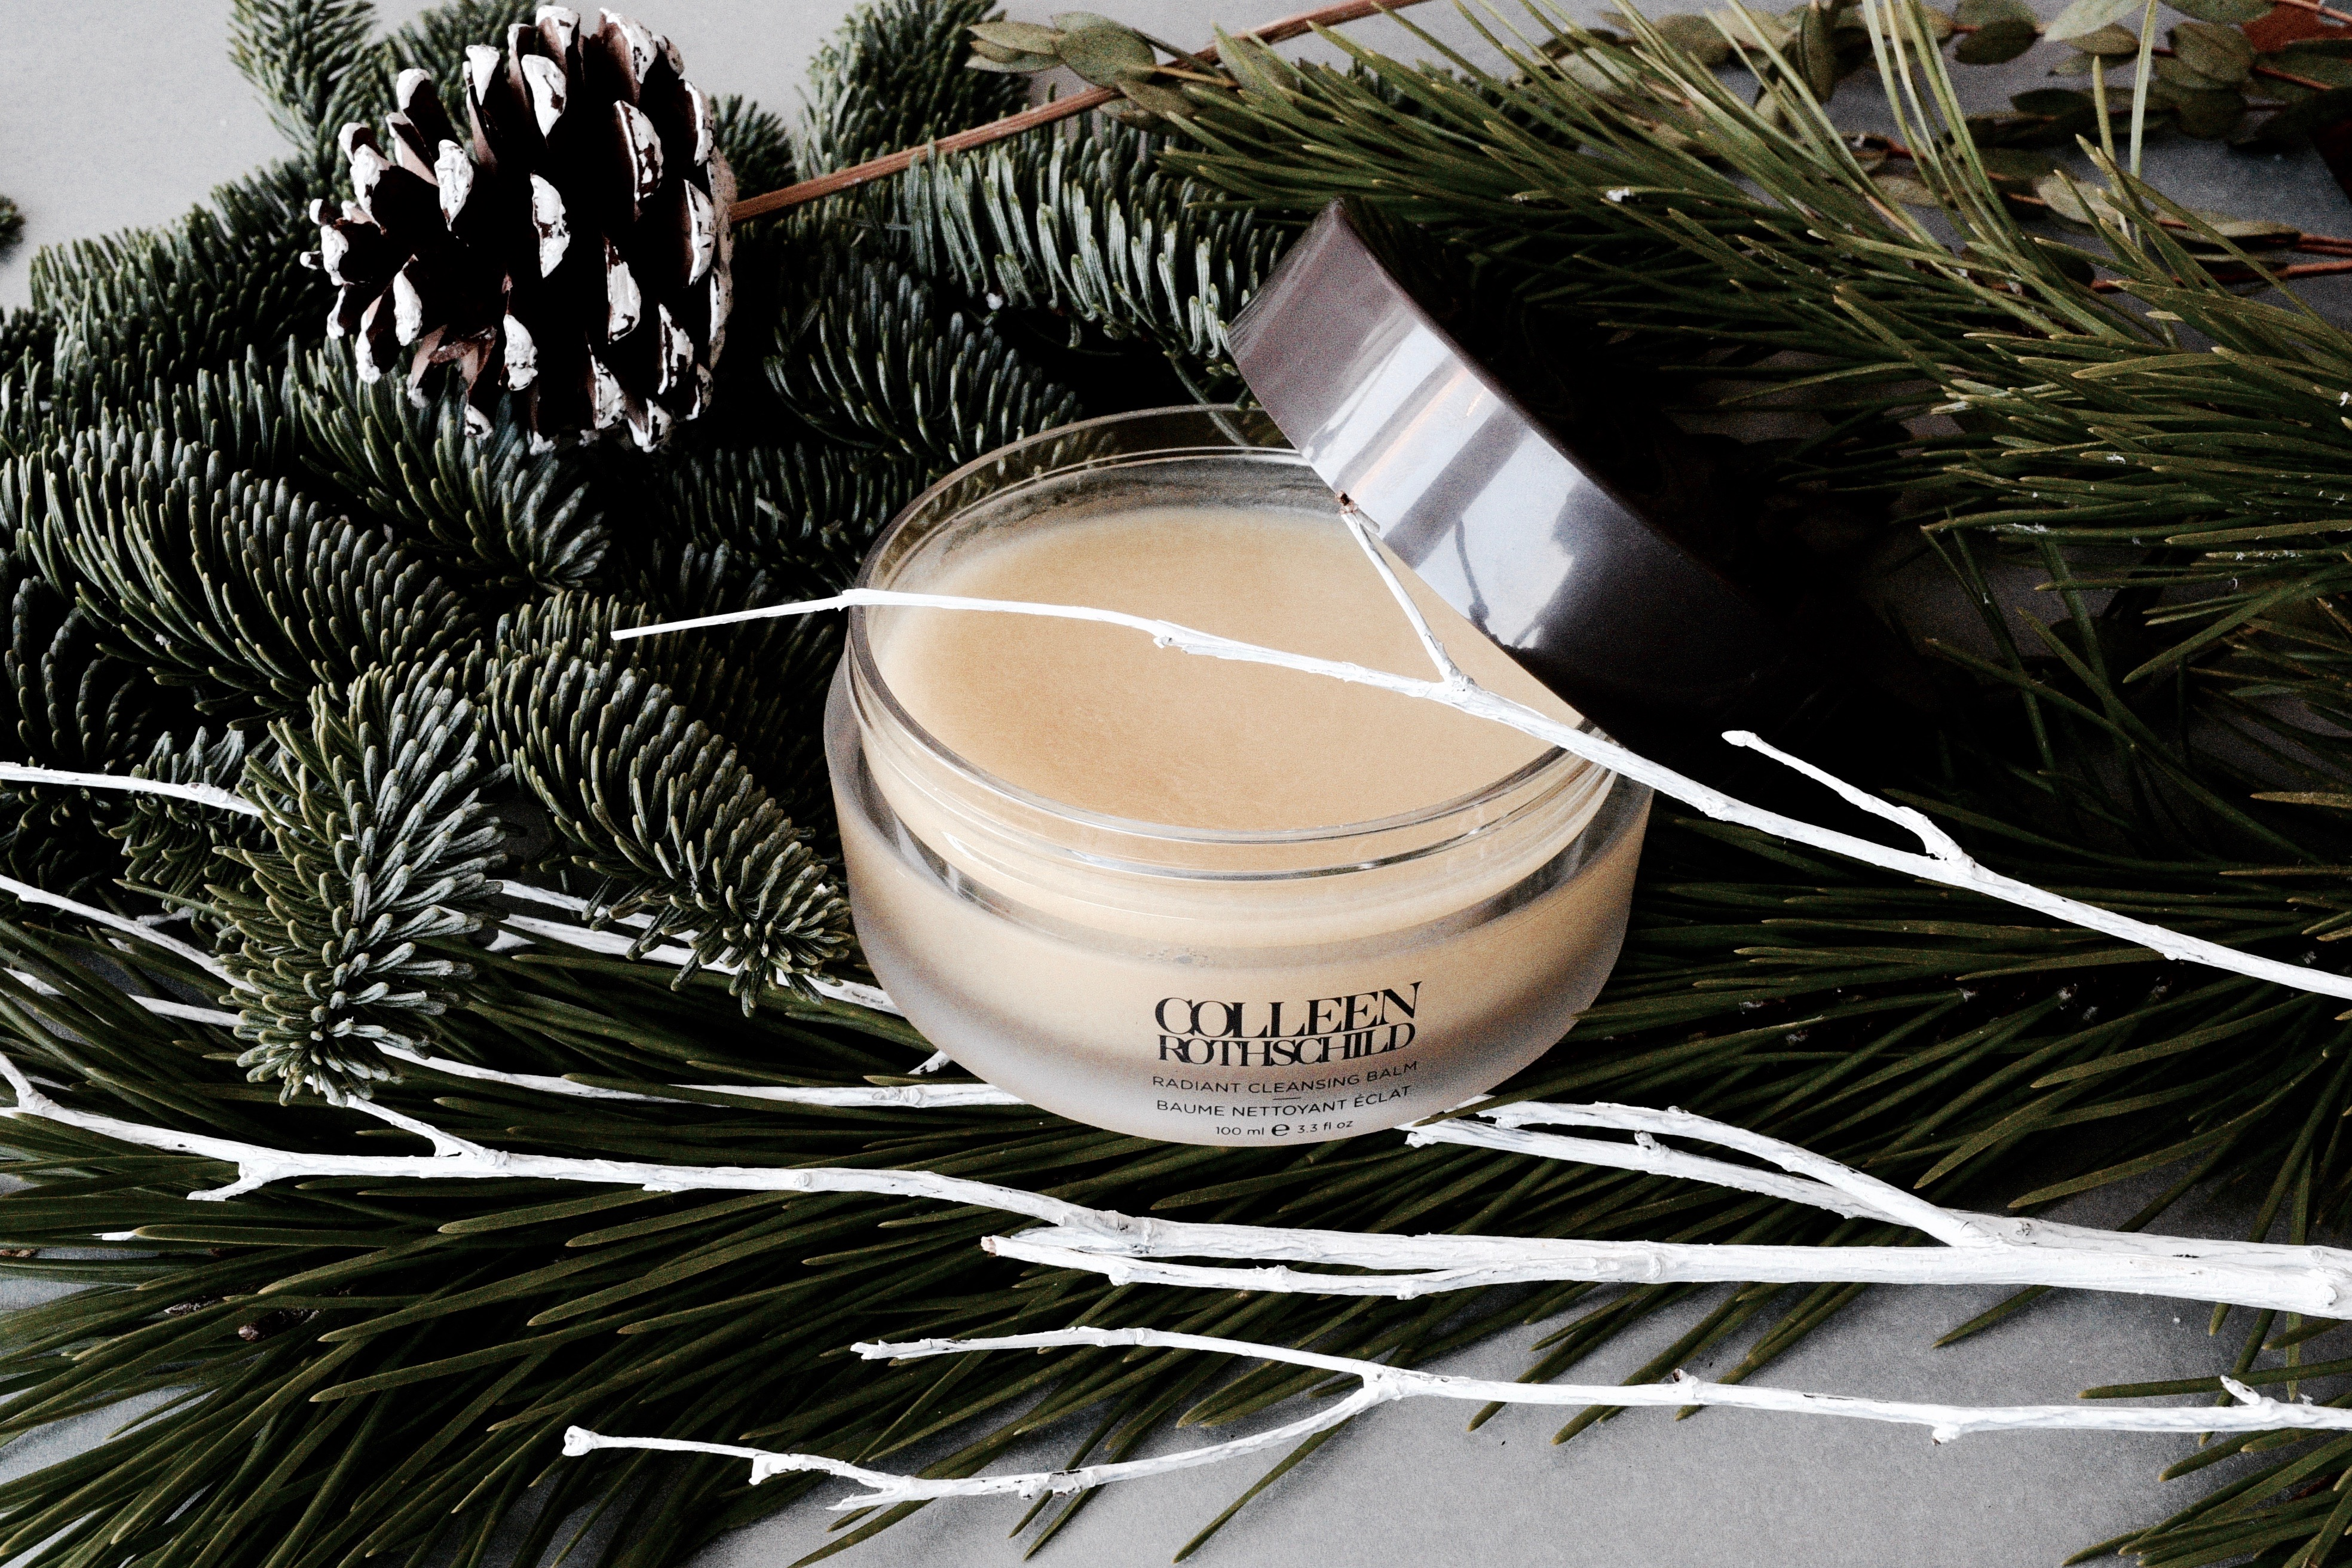 Collen Rothschild Radiant Cleansing Balm - RRP £46